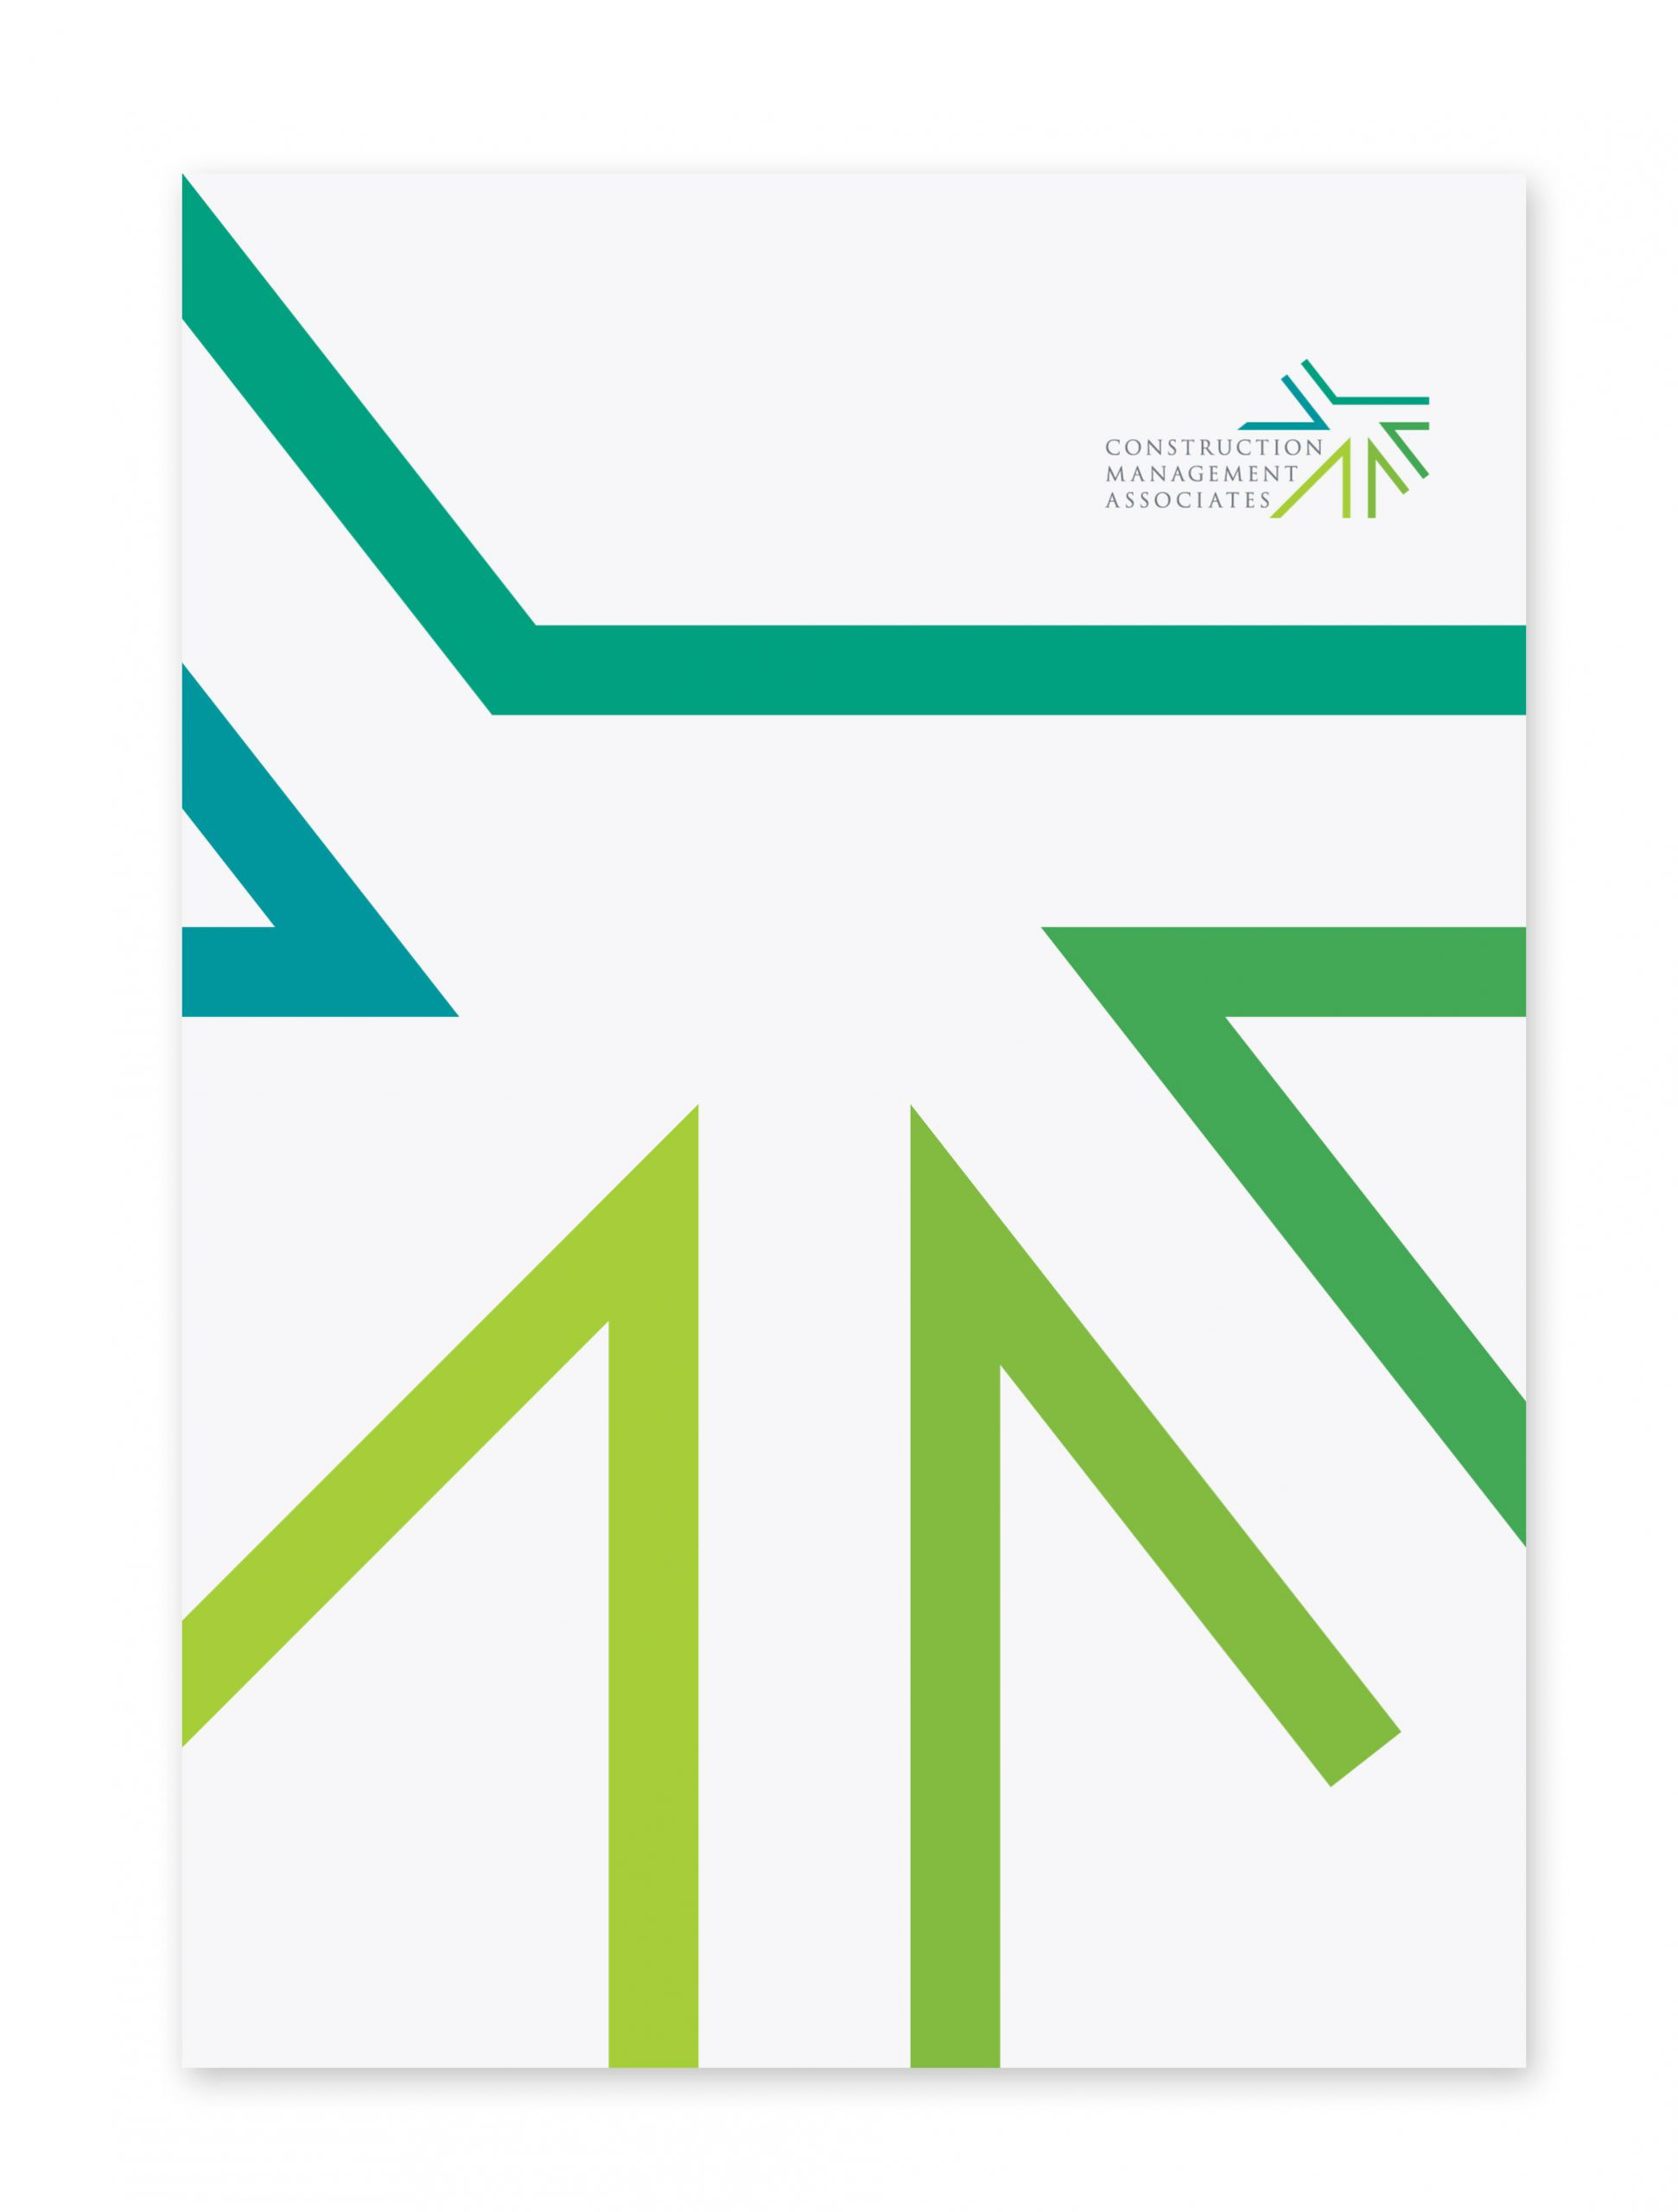 Project image 2 for Brand Identity, Construction Management Associates